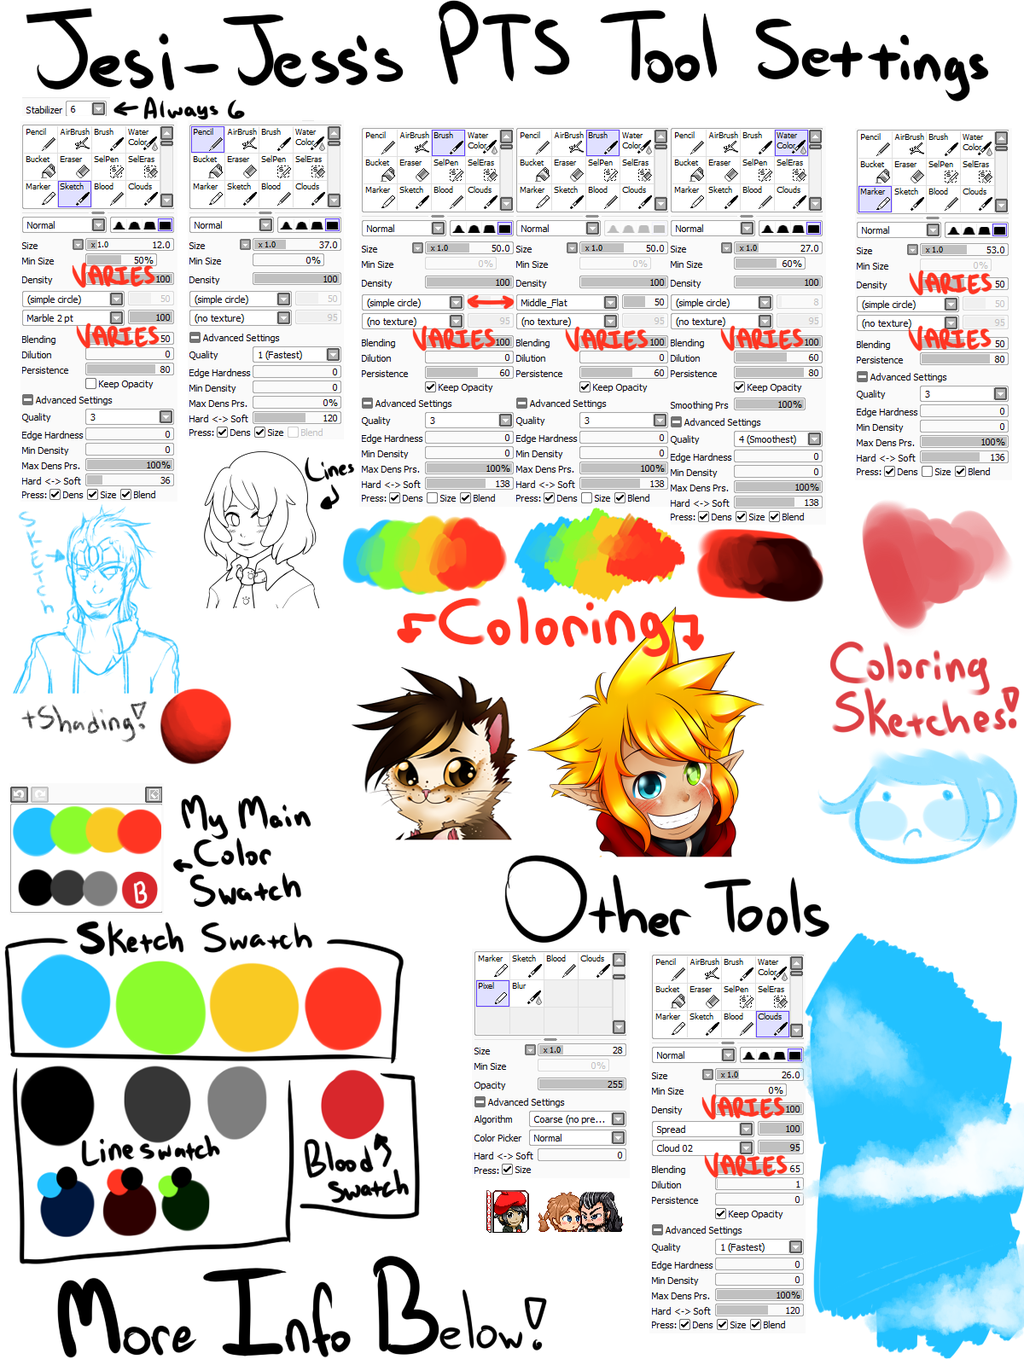 Paint Tool Sai Tools And Swatches V2 By Jesi Jess Deviantart Com